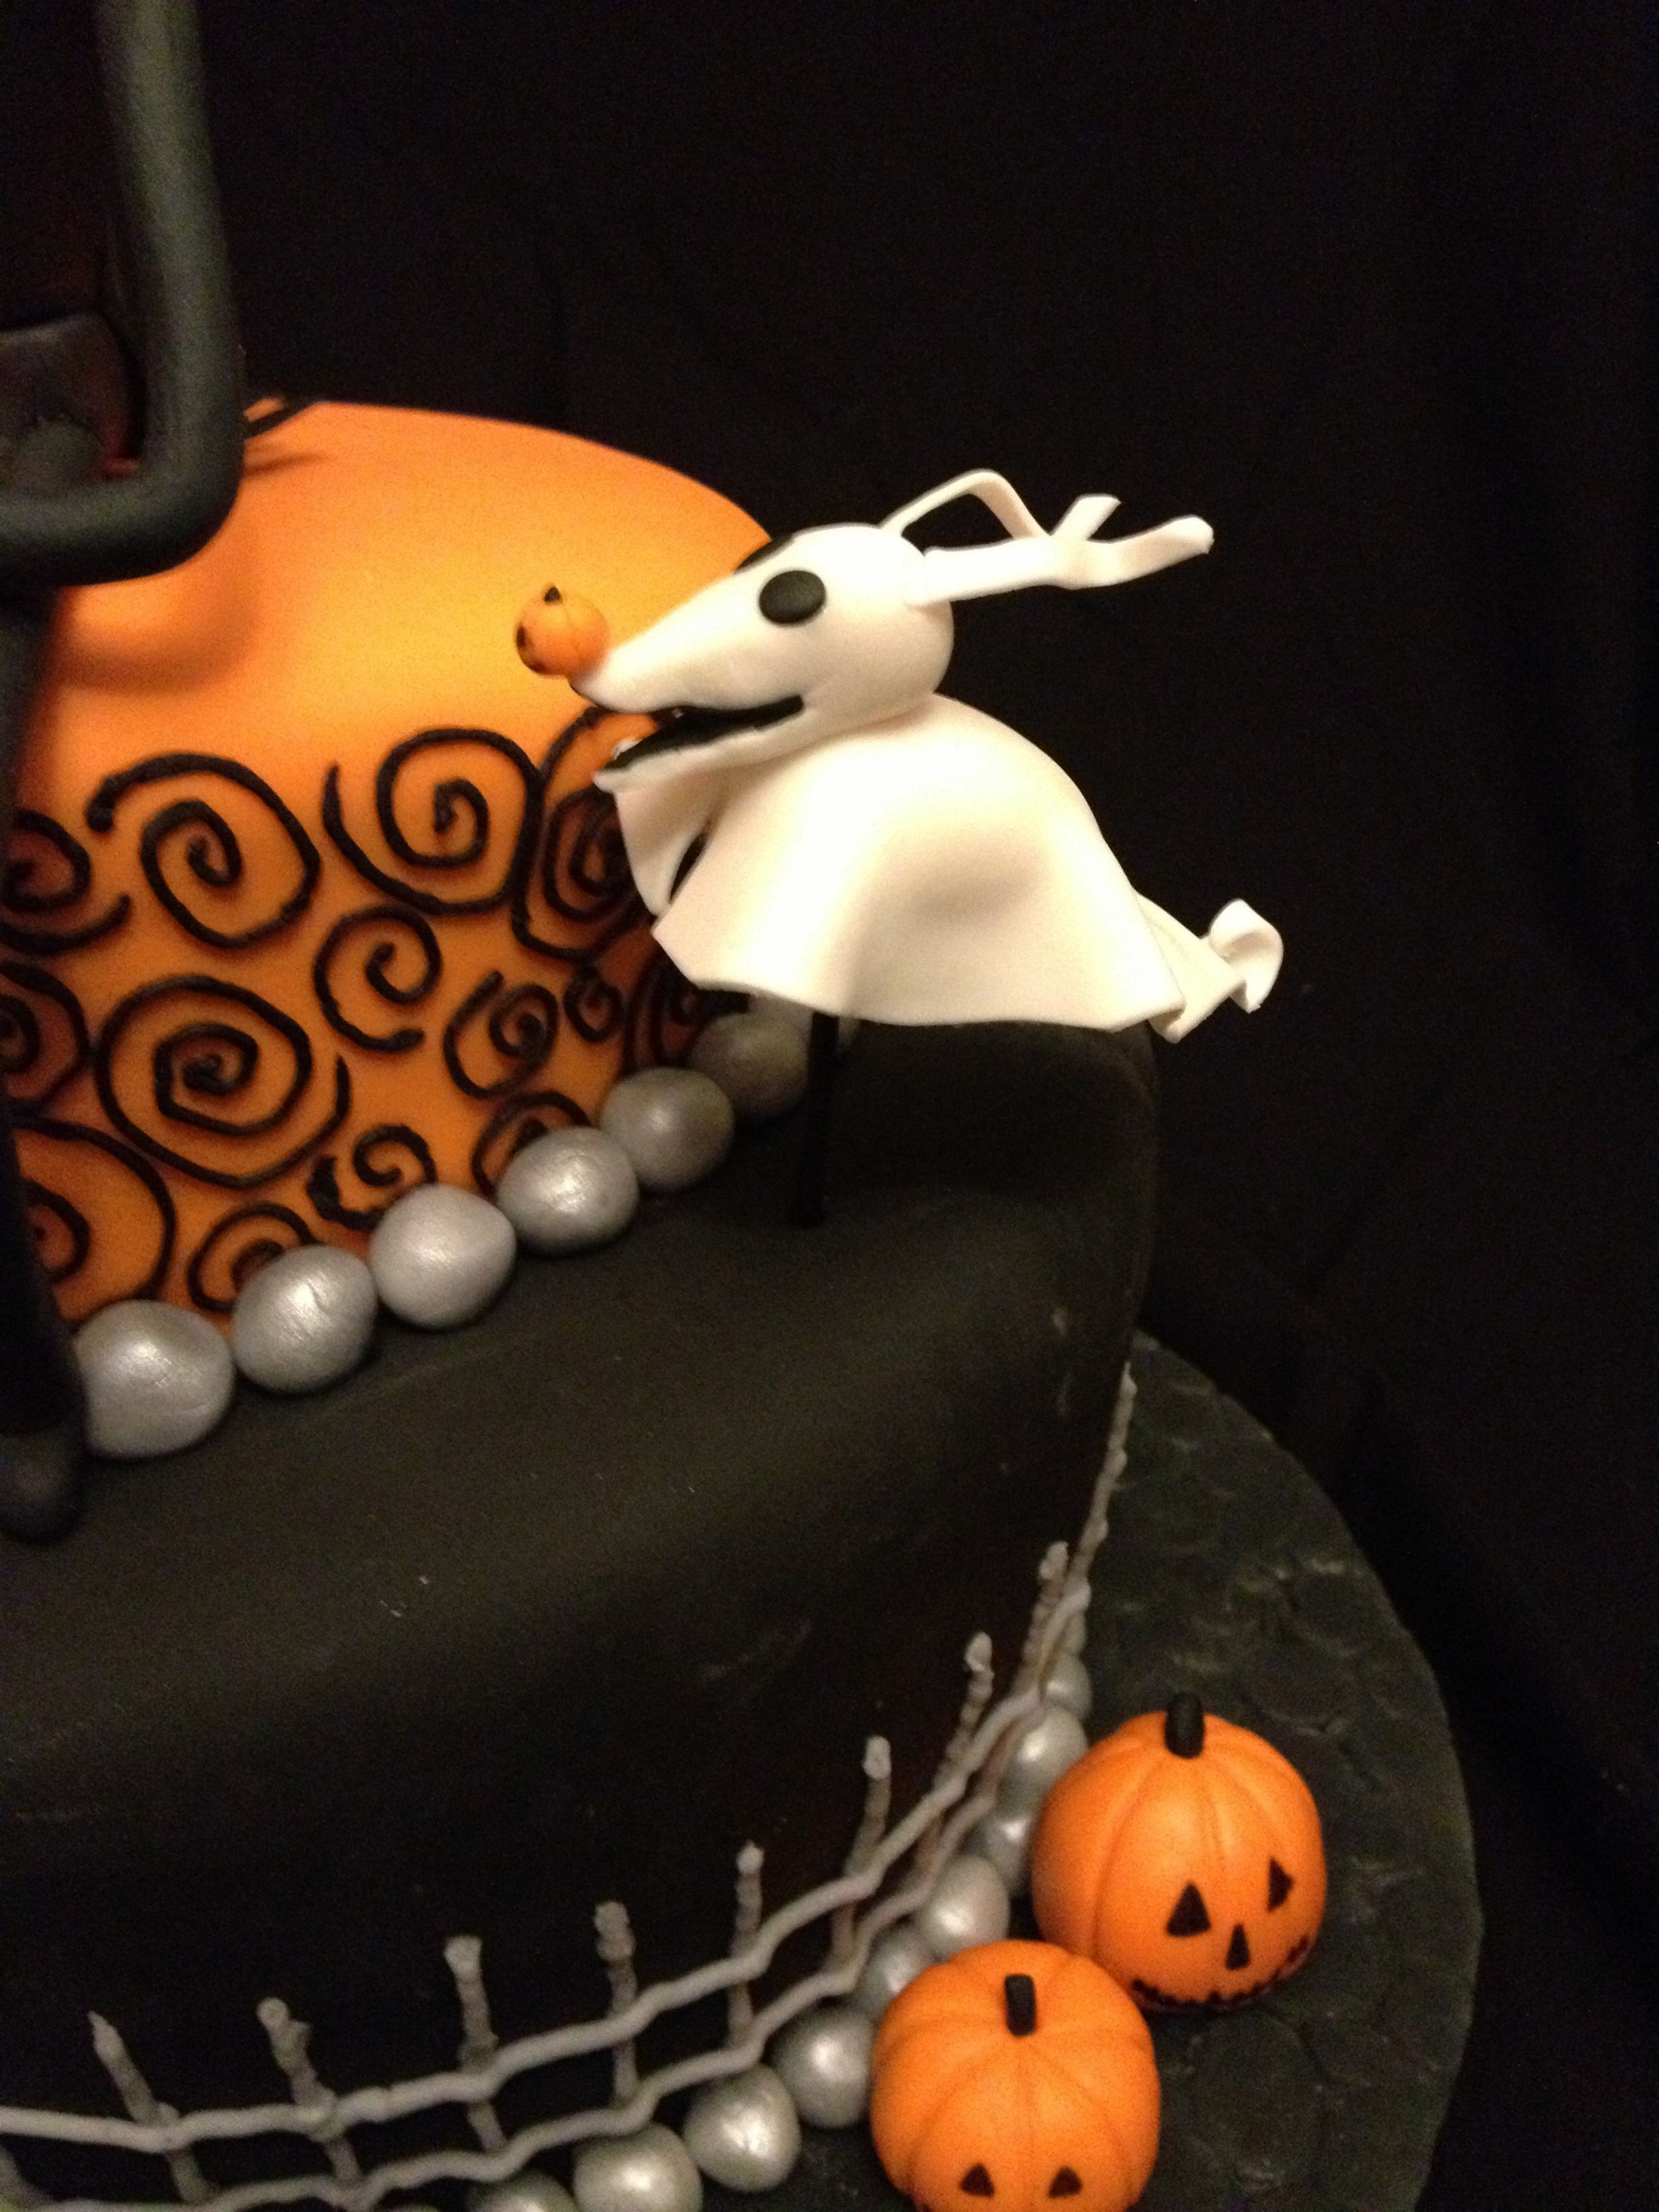 Nightmare Before Christmas Themed Birthday Cake This Design Was Recreated From A Photo That Requested I Made Few Changes But The Overall